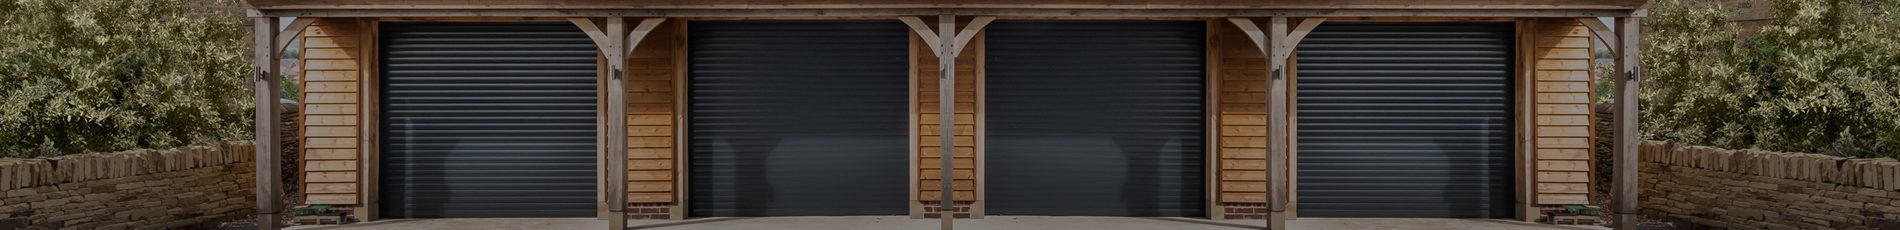 Roller Garage Doors East Grinstead